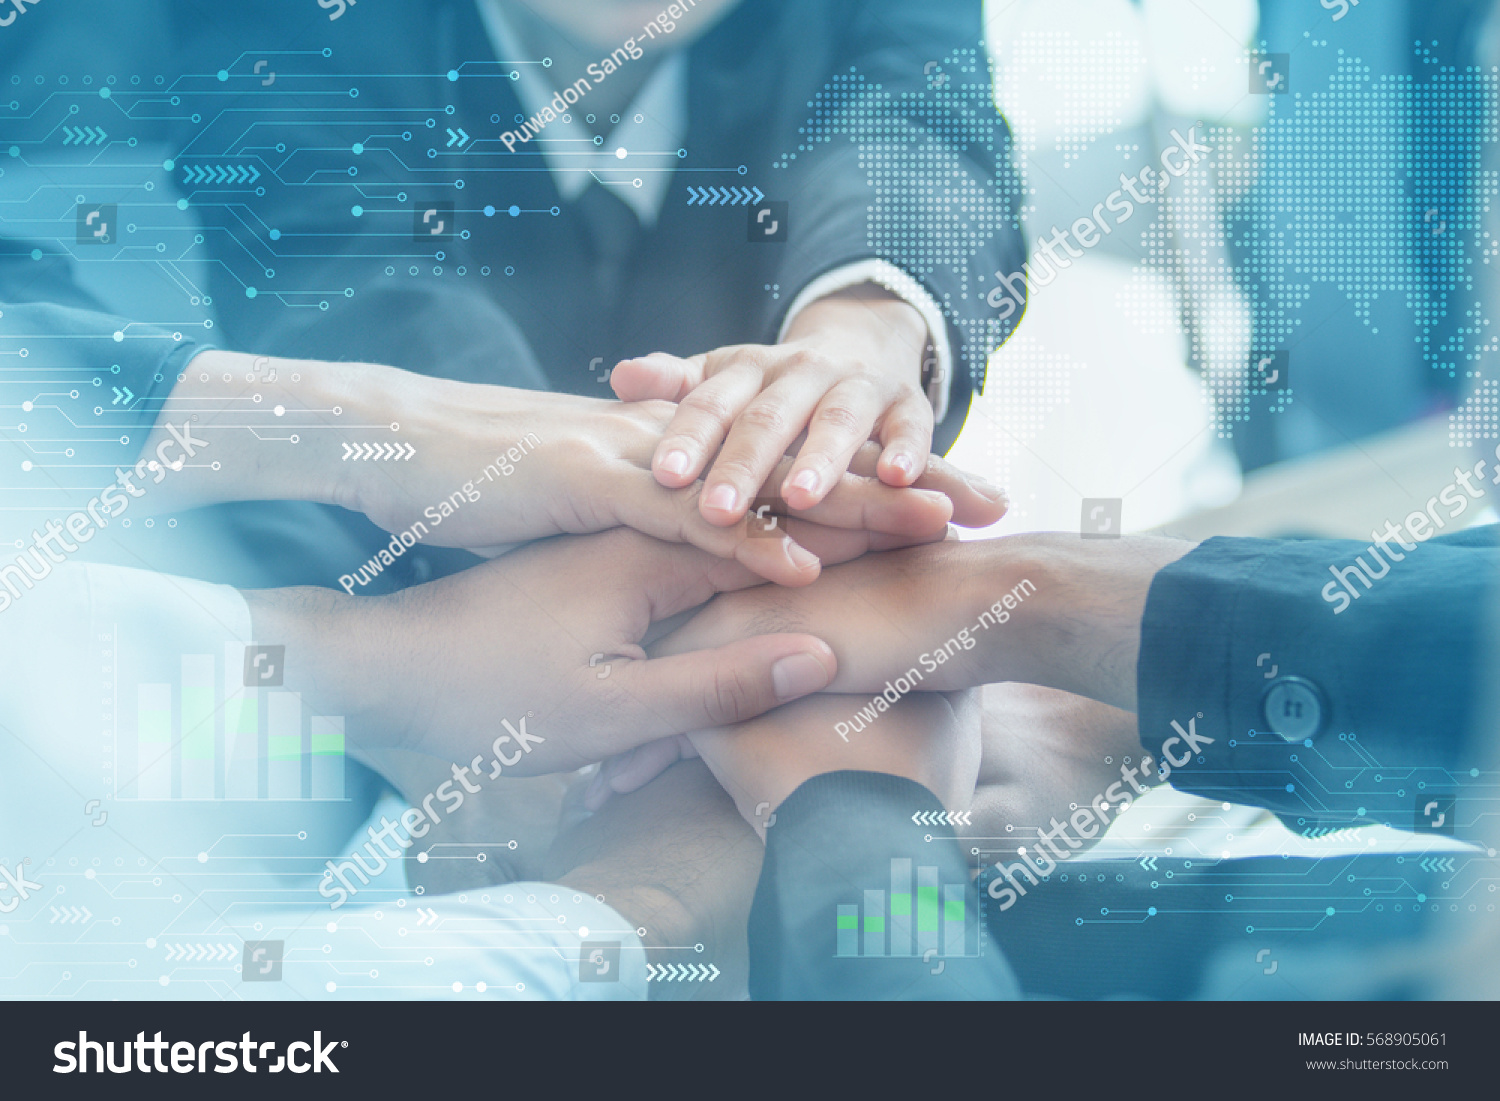 Concept of teamwork. business people joined hands #568905061